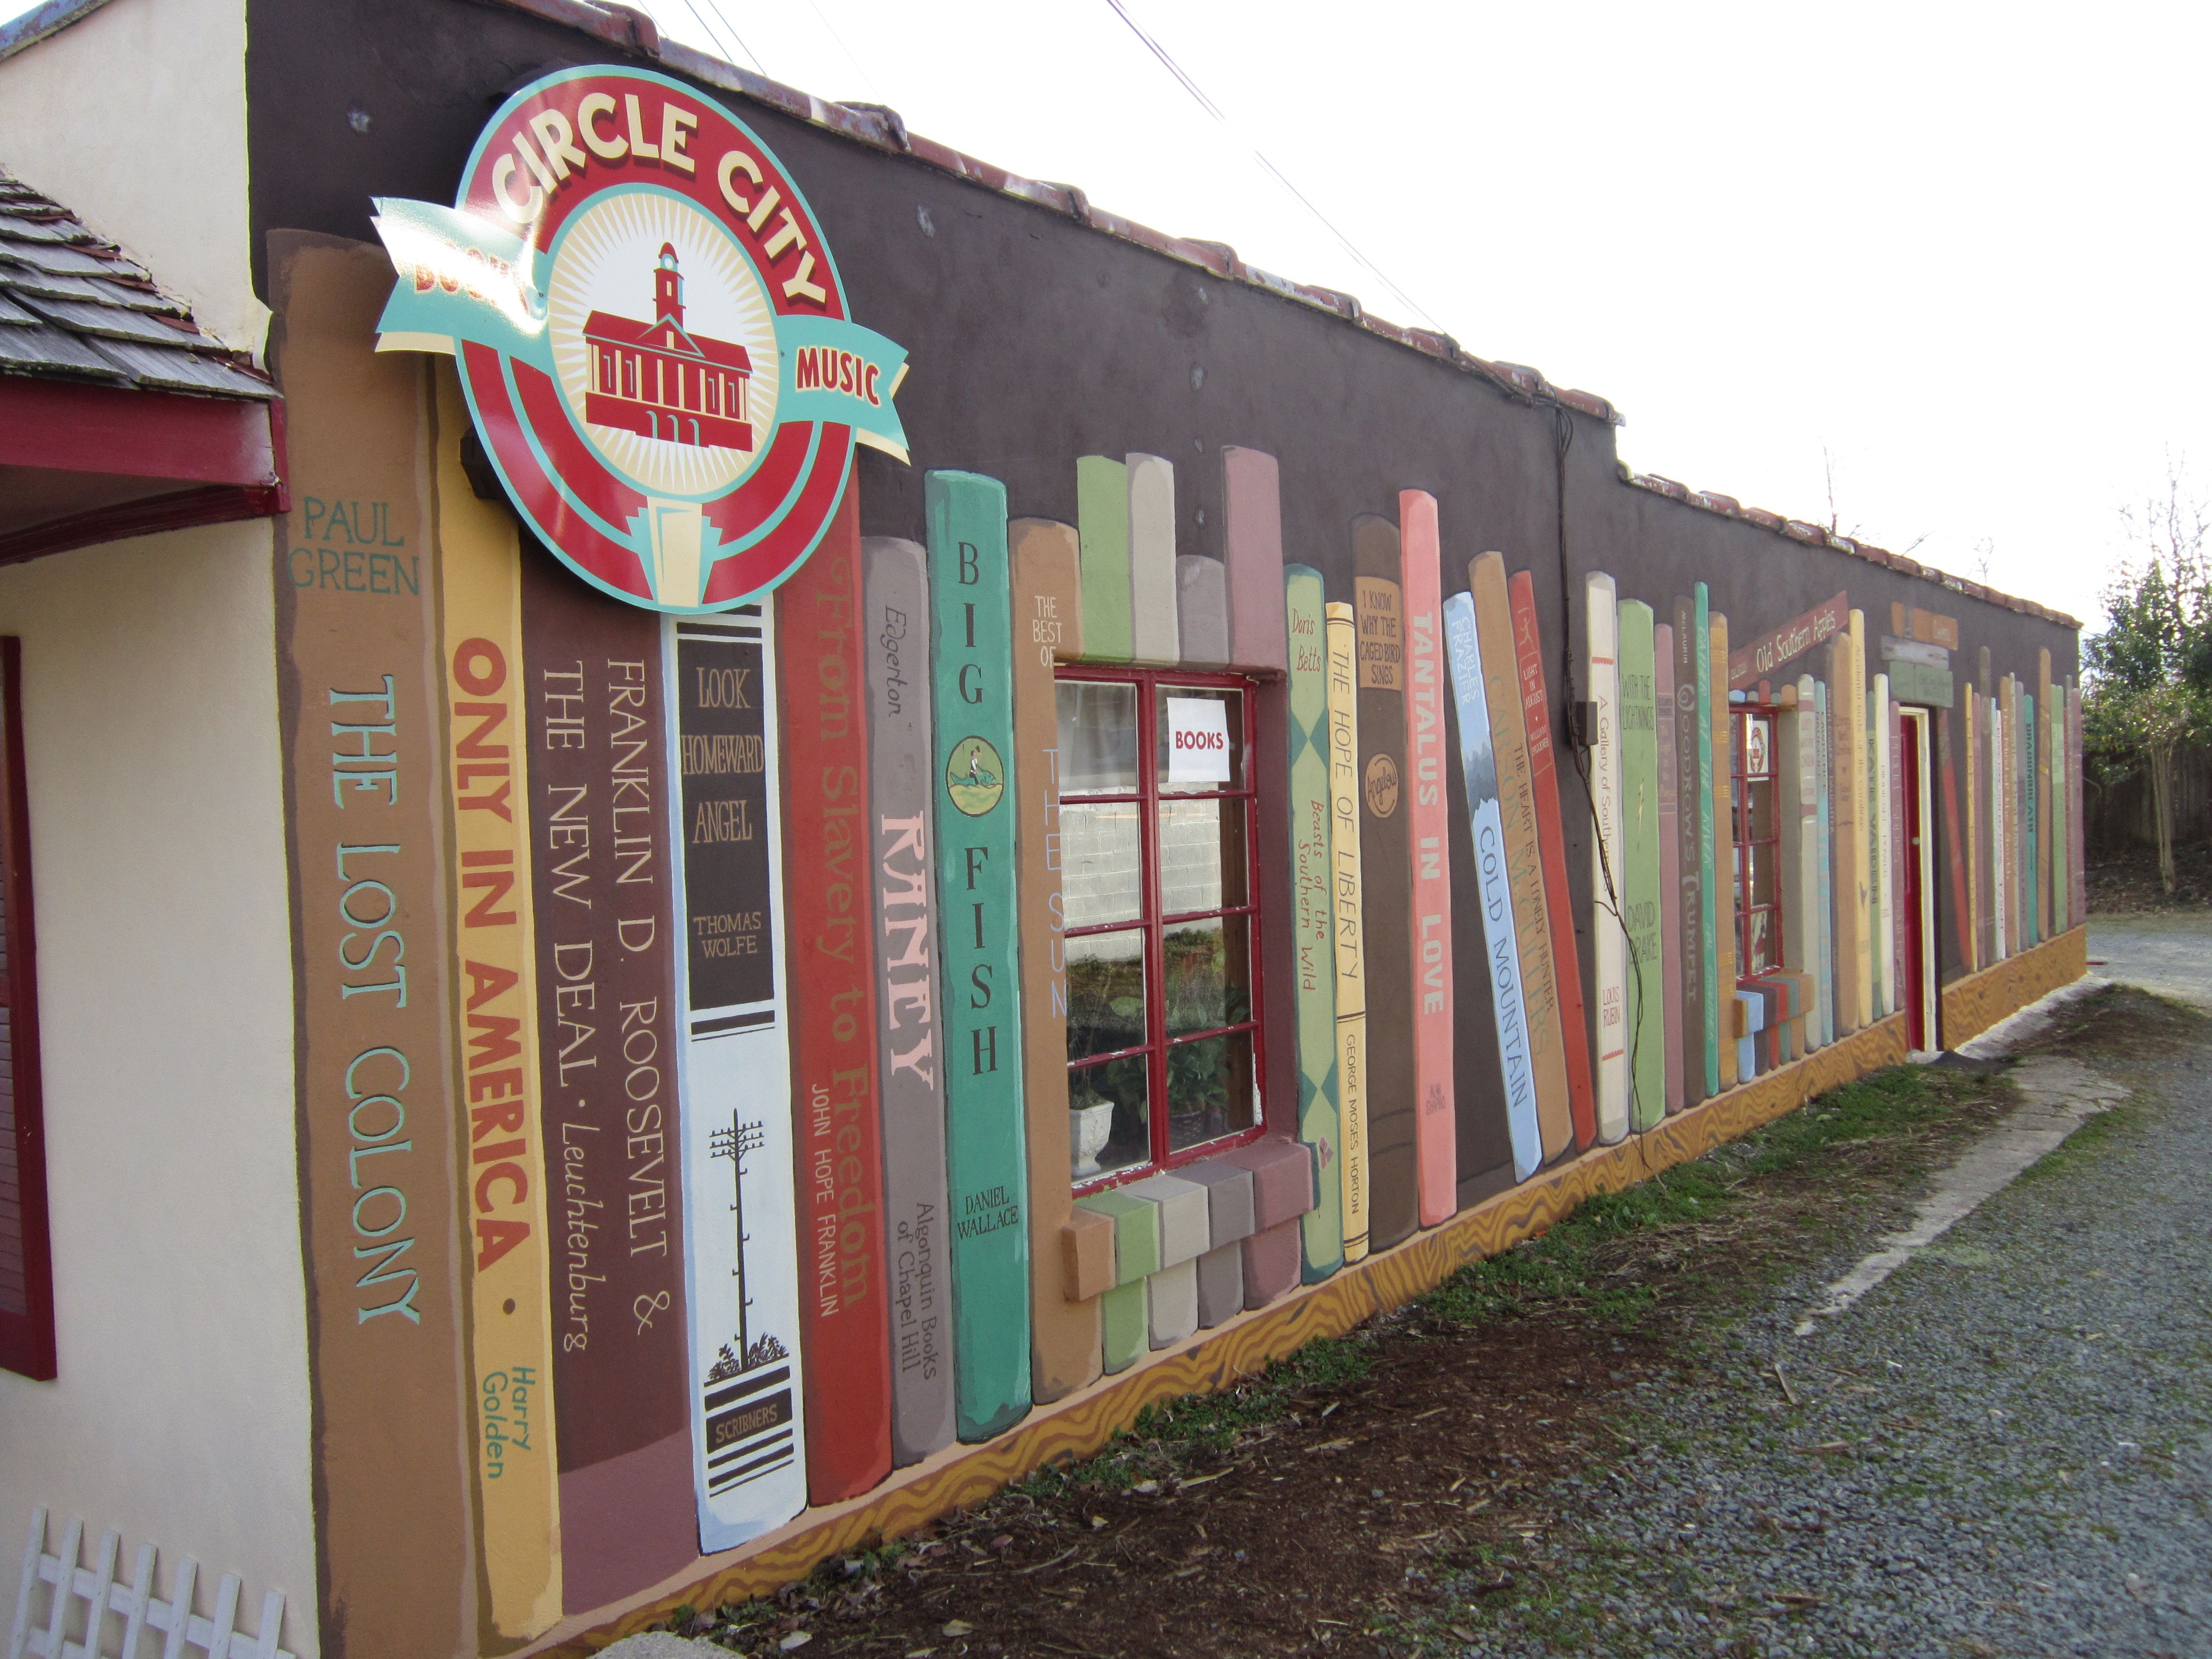 A mural created on one wall of circle city books and music store a mural created on one wall of circle city books and music store pittsboro amipublicfo Image collections